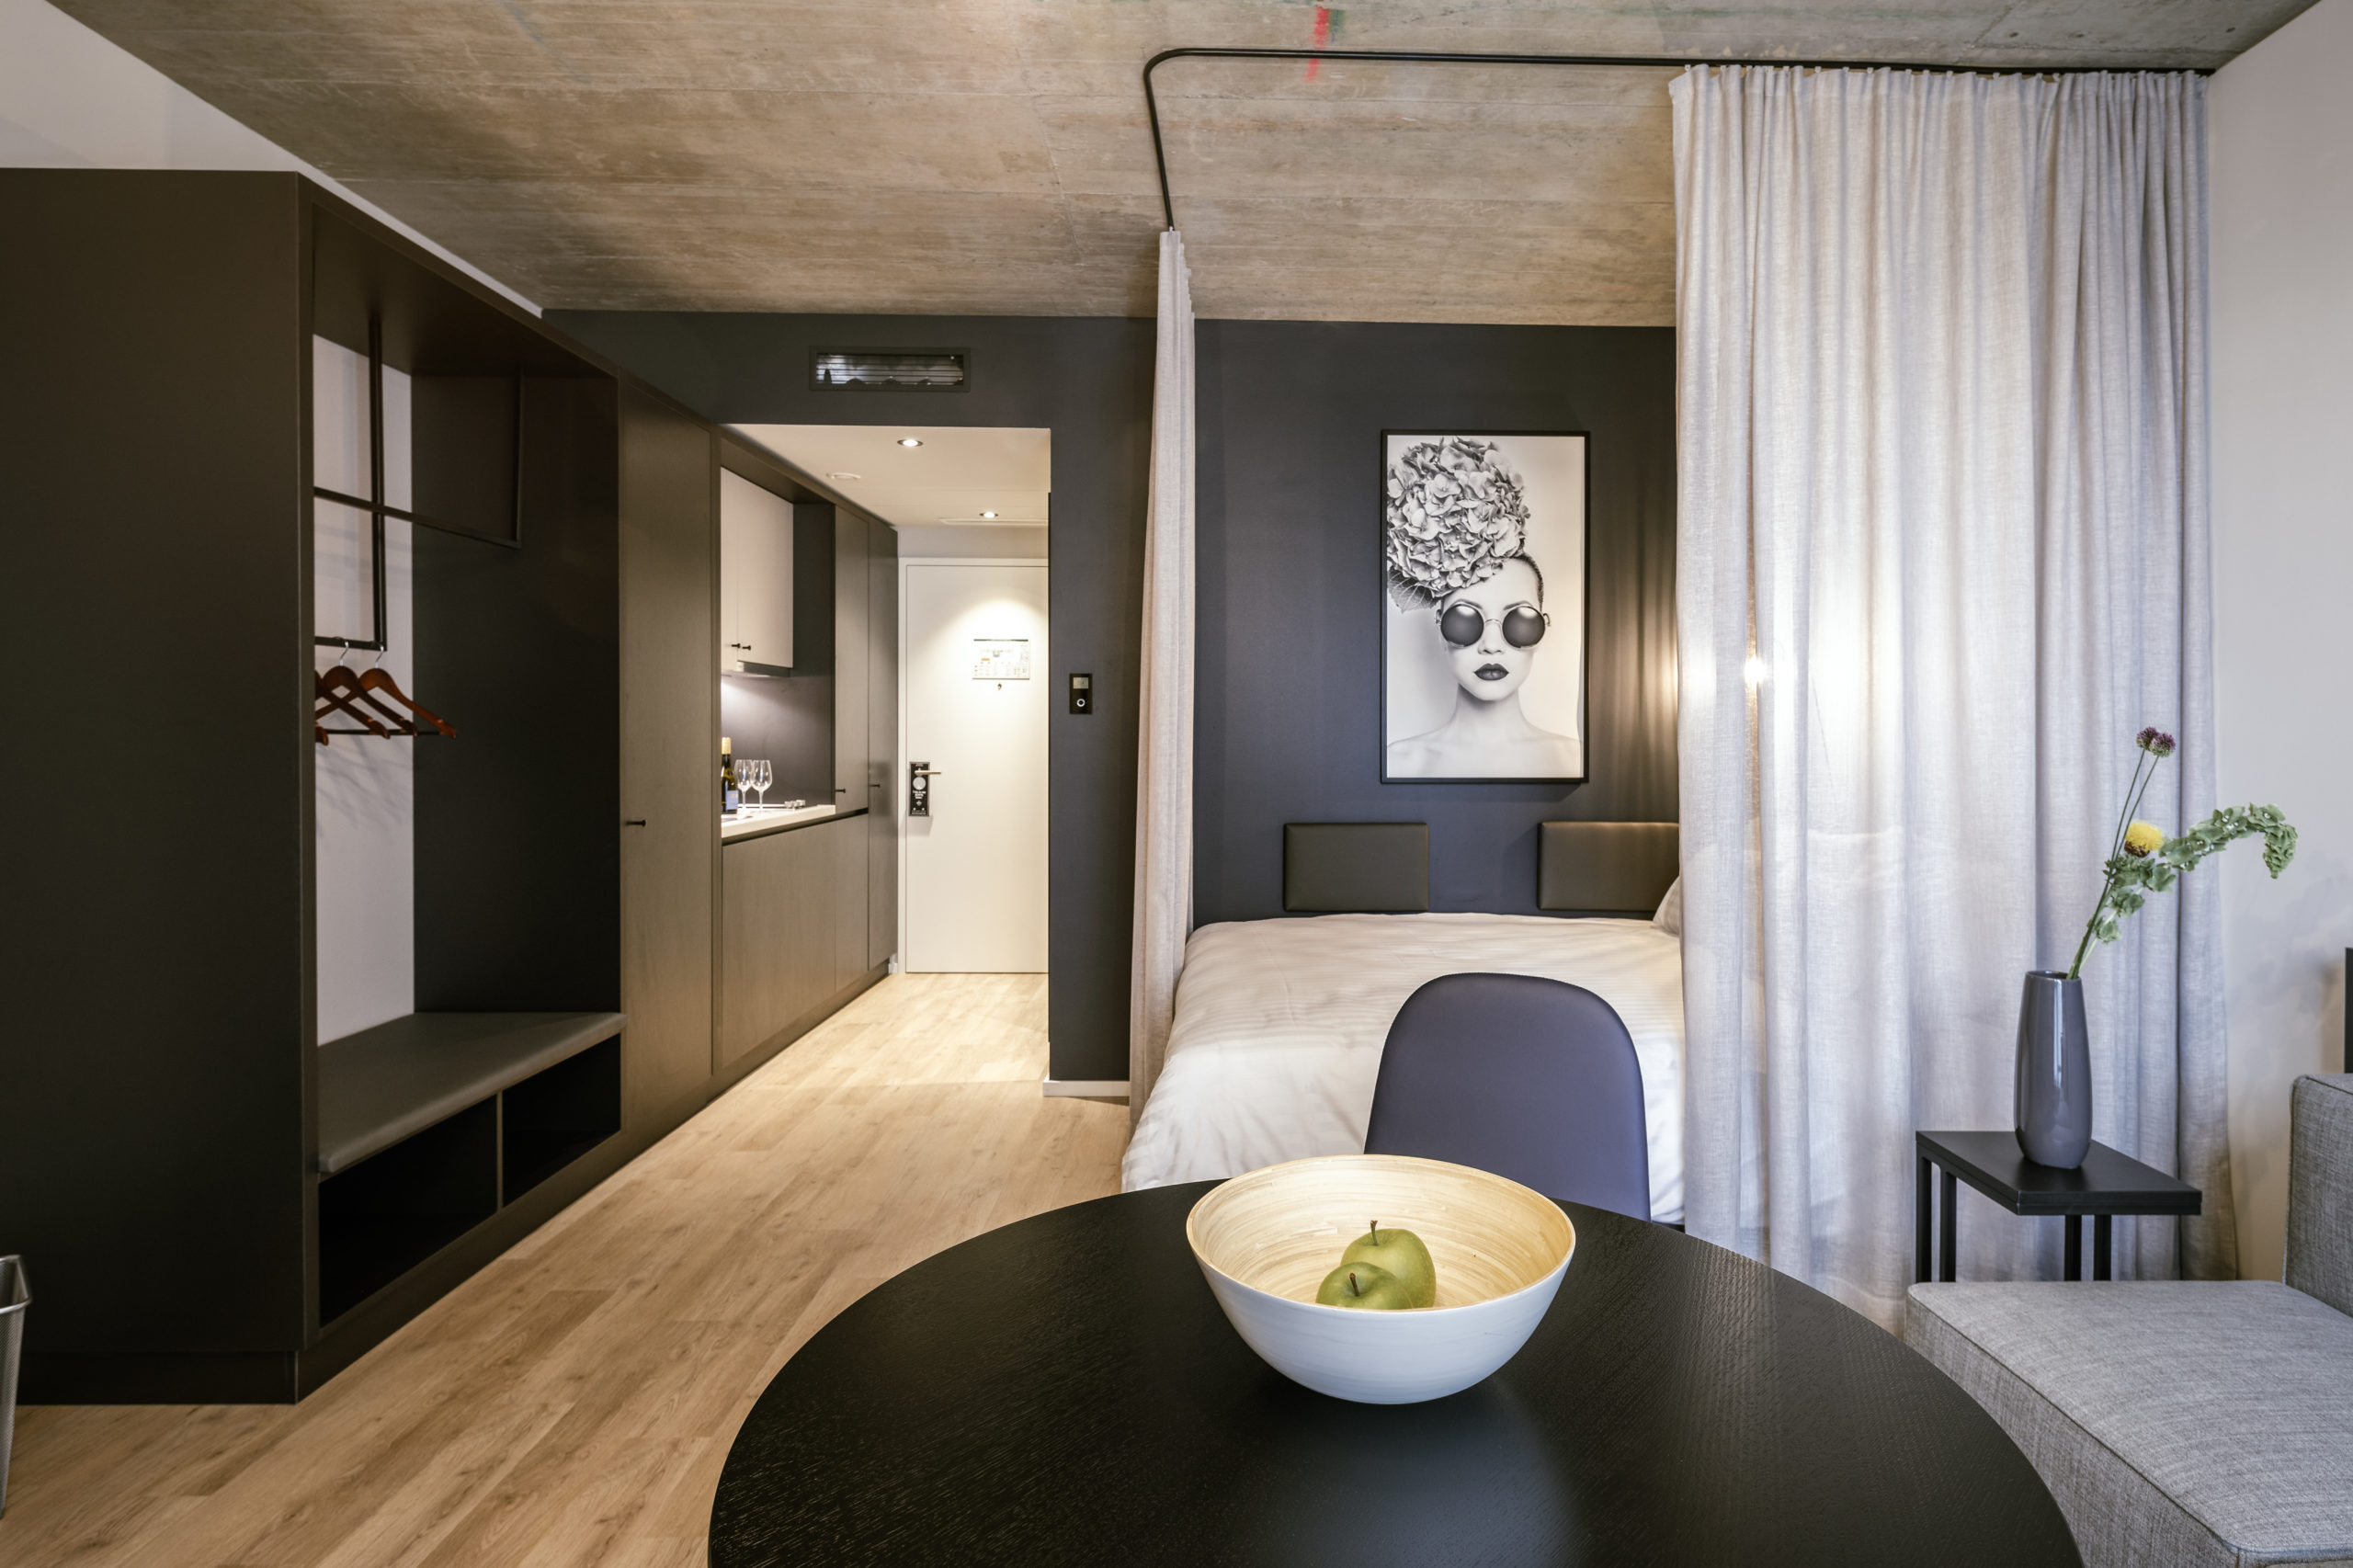 © UPARTMENTS Real Estate GmbH